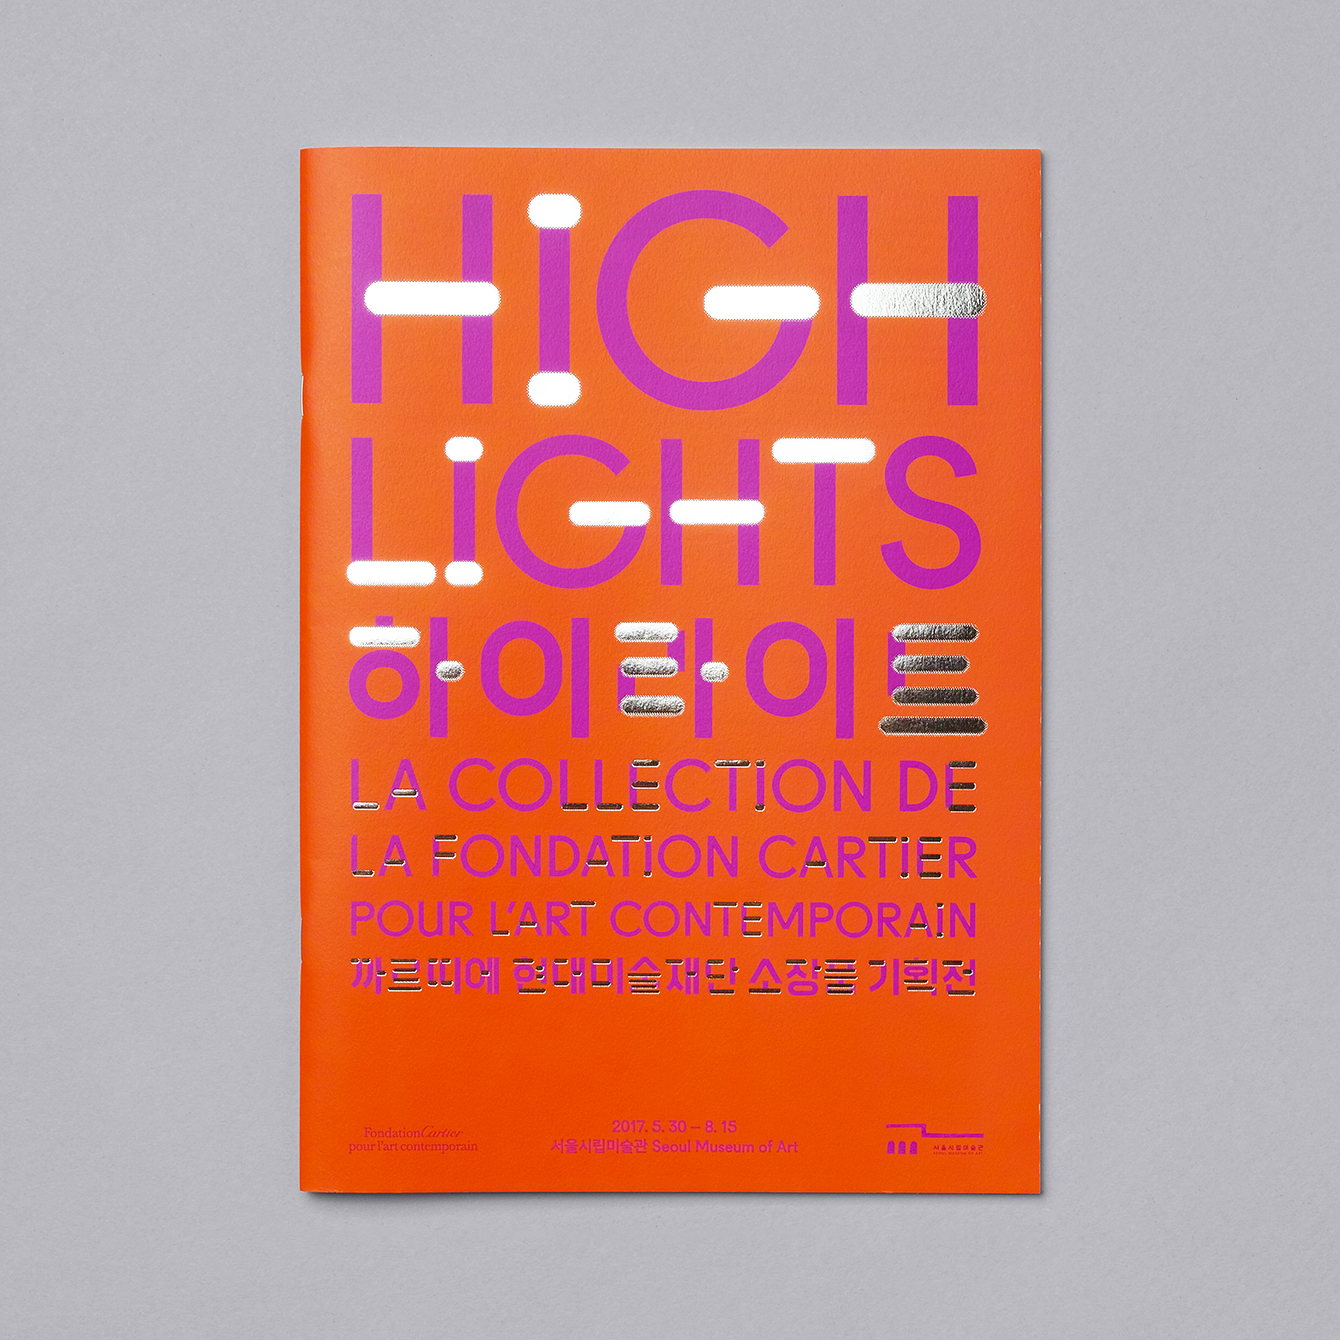 Visual identity and guide book with silver foil detail by Studio fnt for South Korean art exhibition Highlights at SeMA